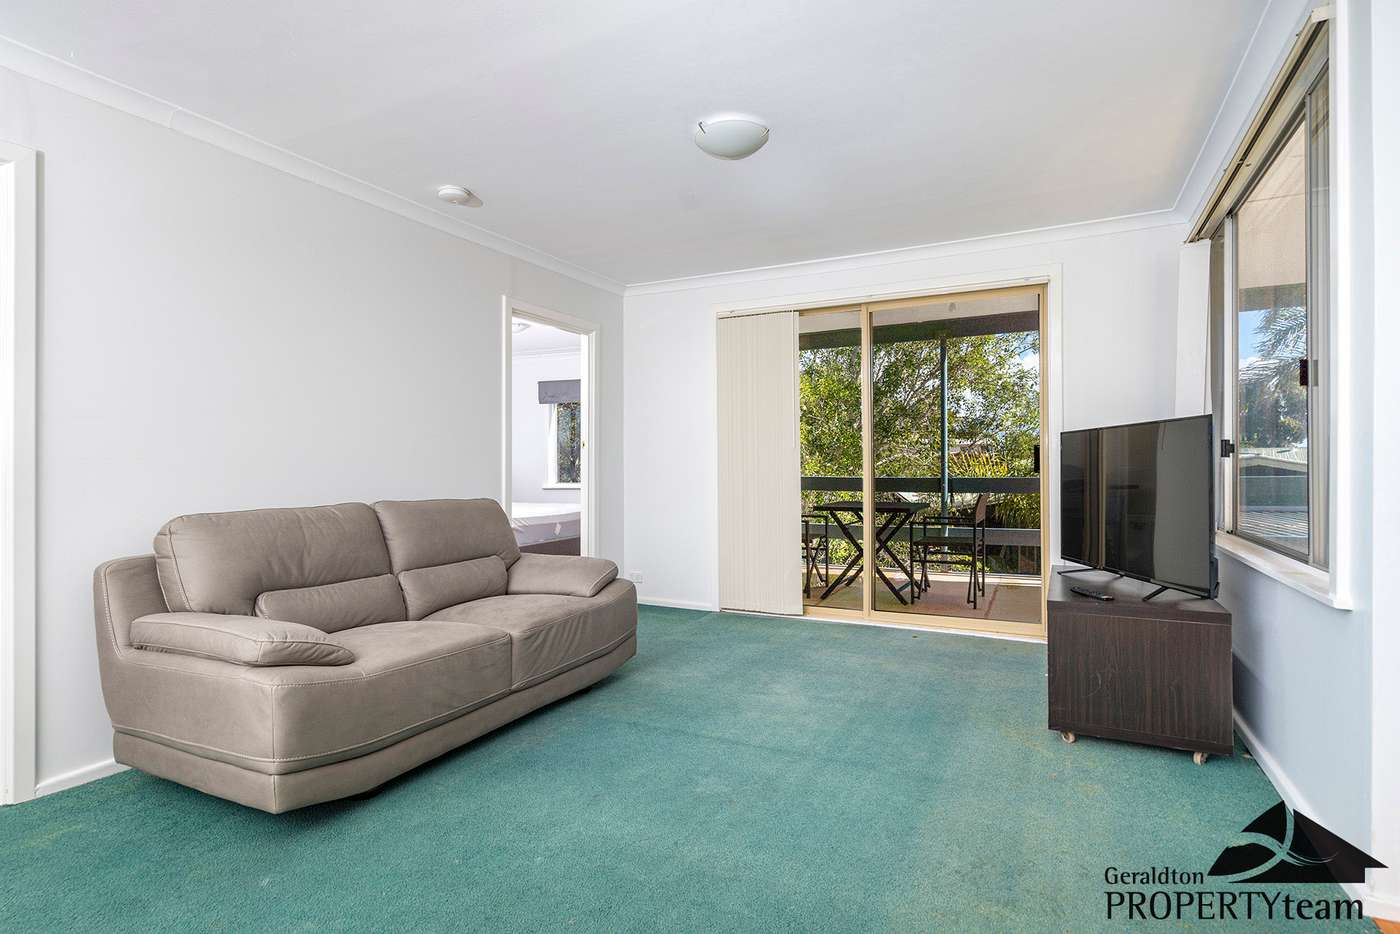 Seventh view of Homely house listing, 5 Ash Place, Kalbarri WA 6536